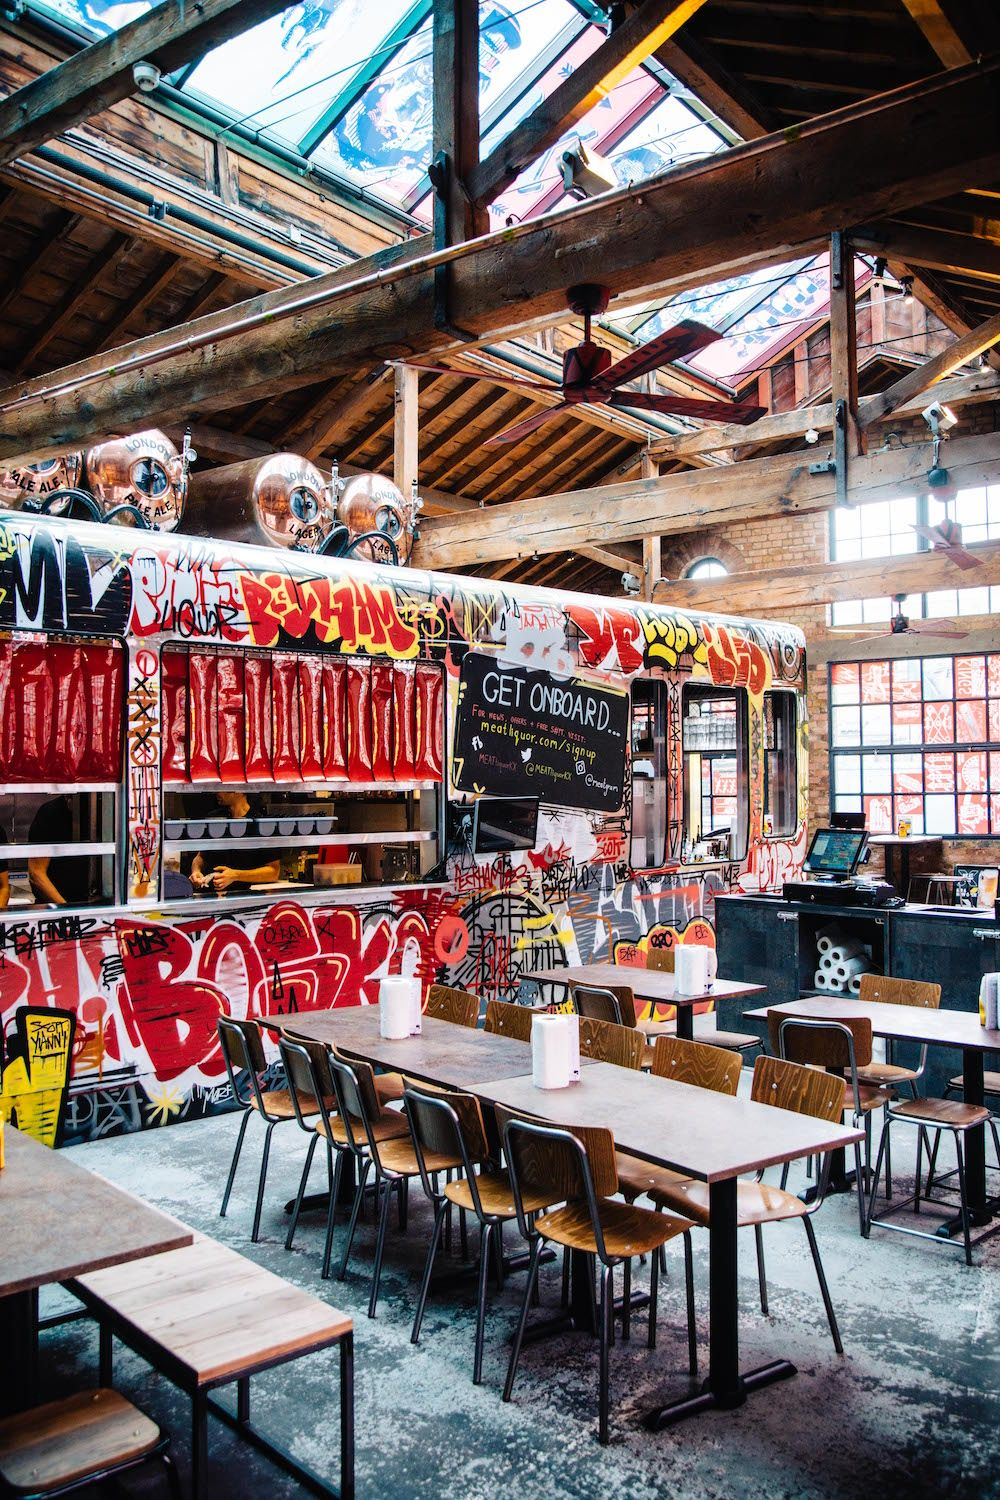 Meat Liquor Kings Cross Shed Interior Architecture Design Meatliquor Restaurant In London With Graffiti And Train Carriage Inside Warehouse